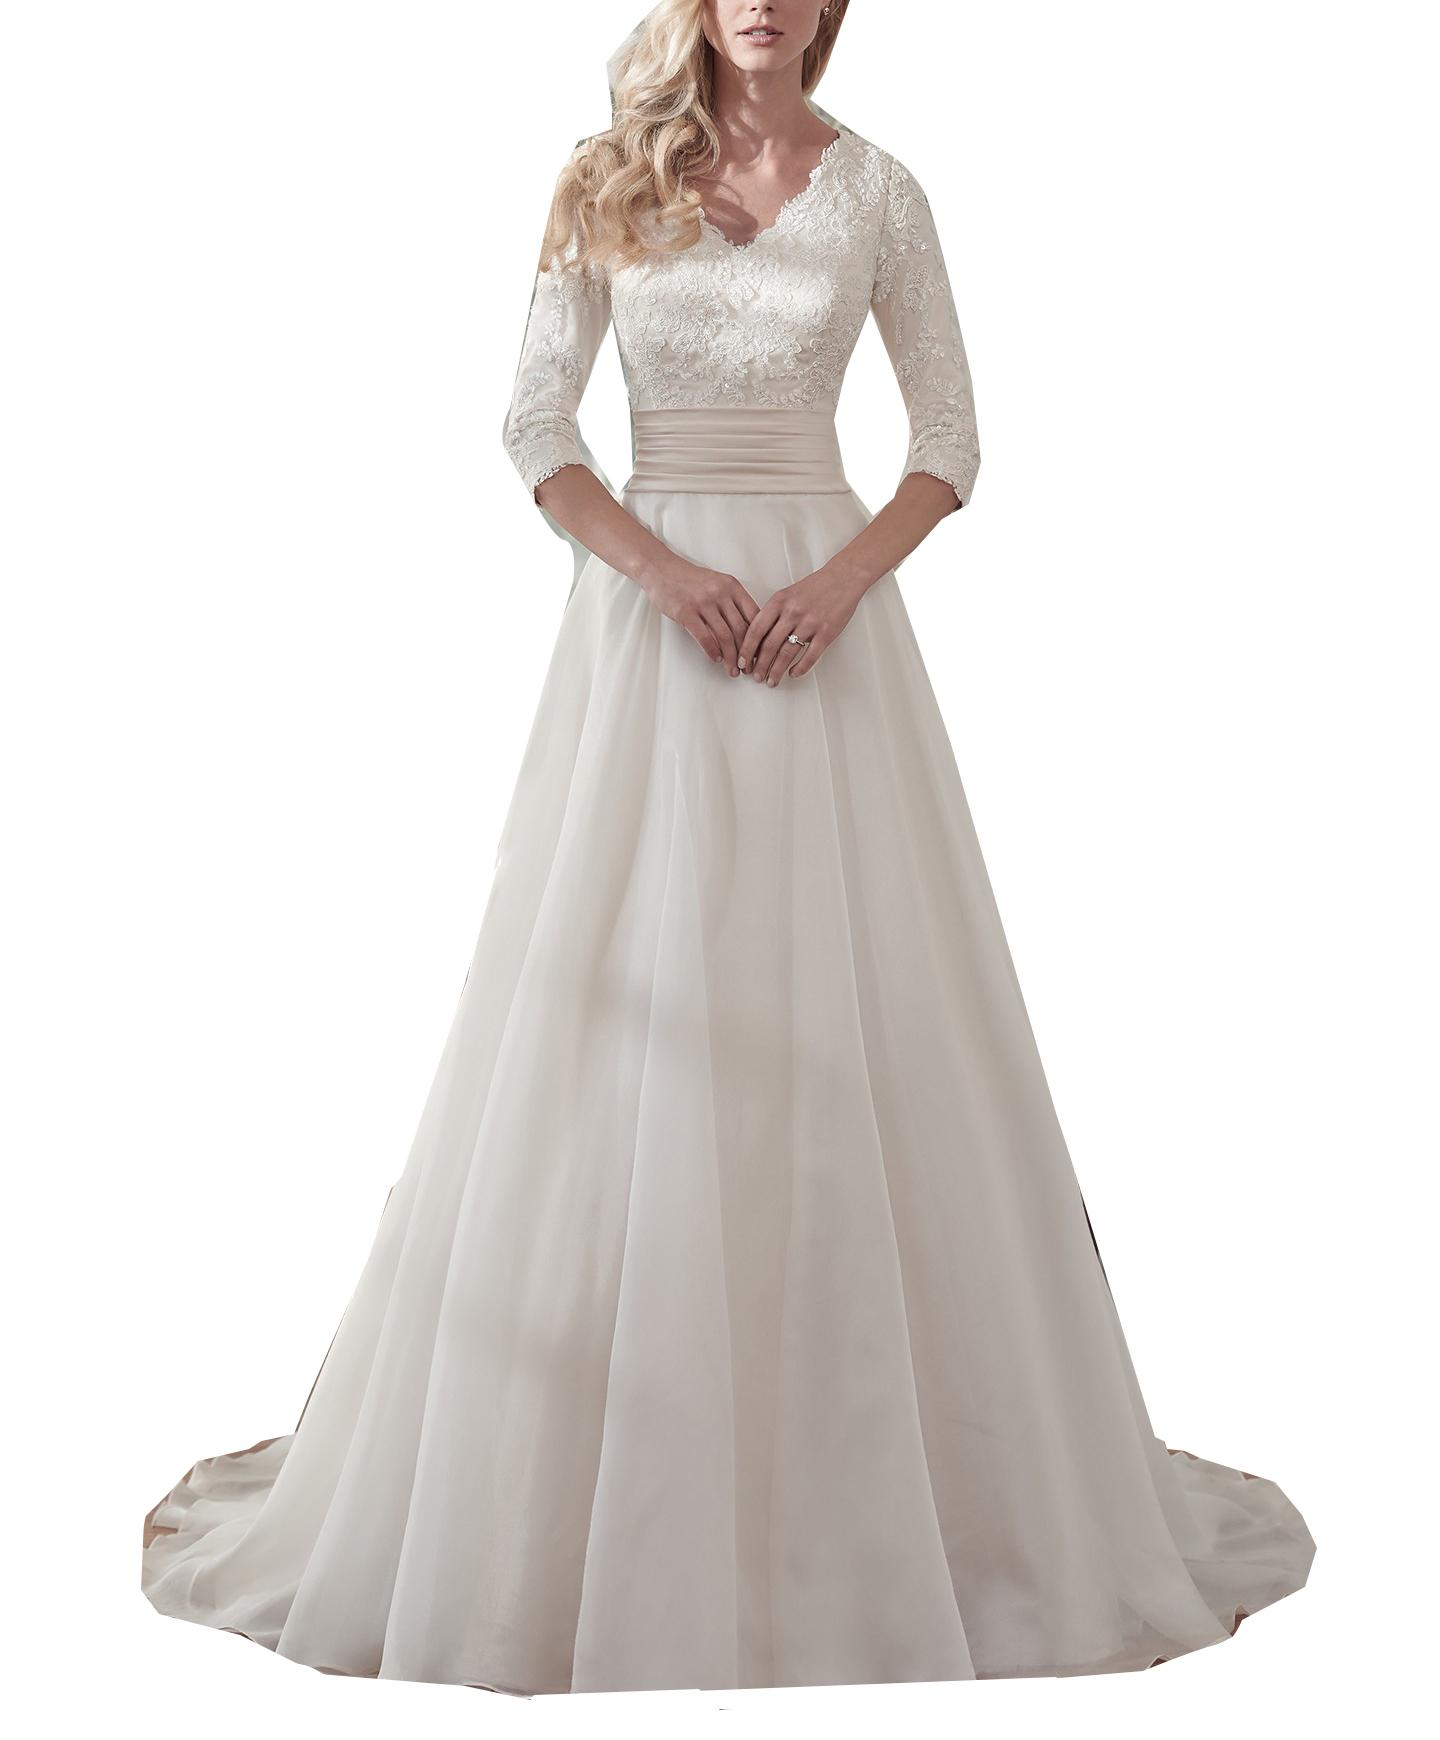 Cheap 3 4 Sleeve Wedding Dresses: Discount Modest 3/4 Sleeve Lace Wedding Dress A Line Sweep